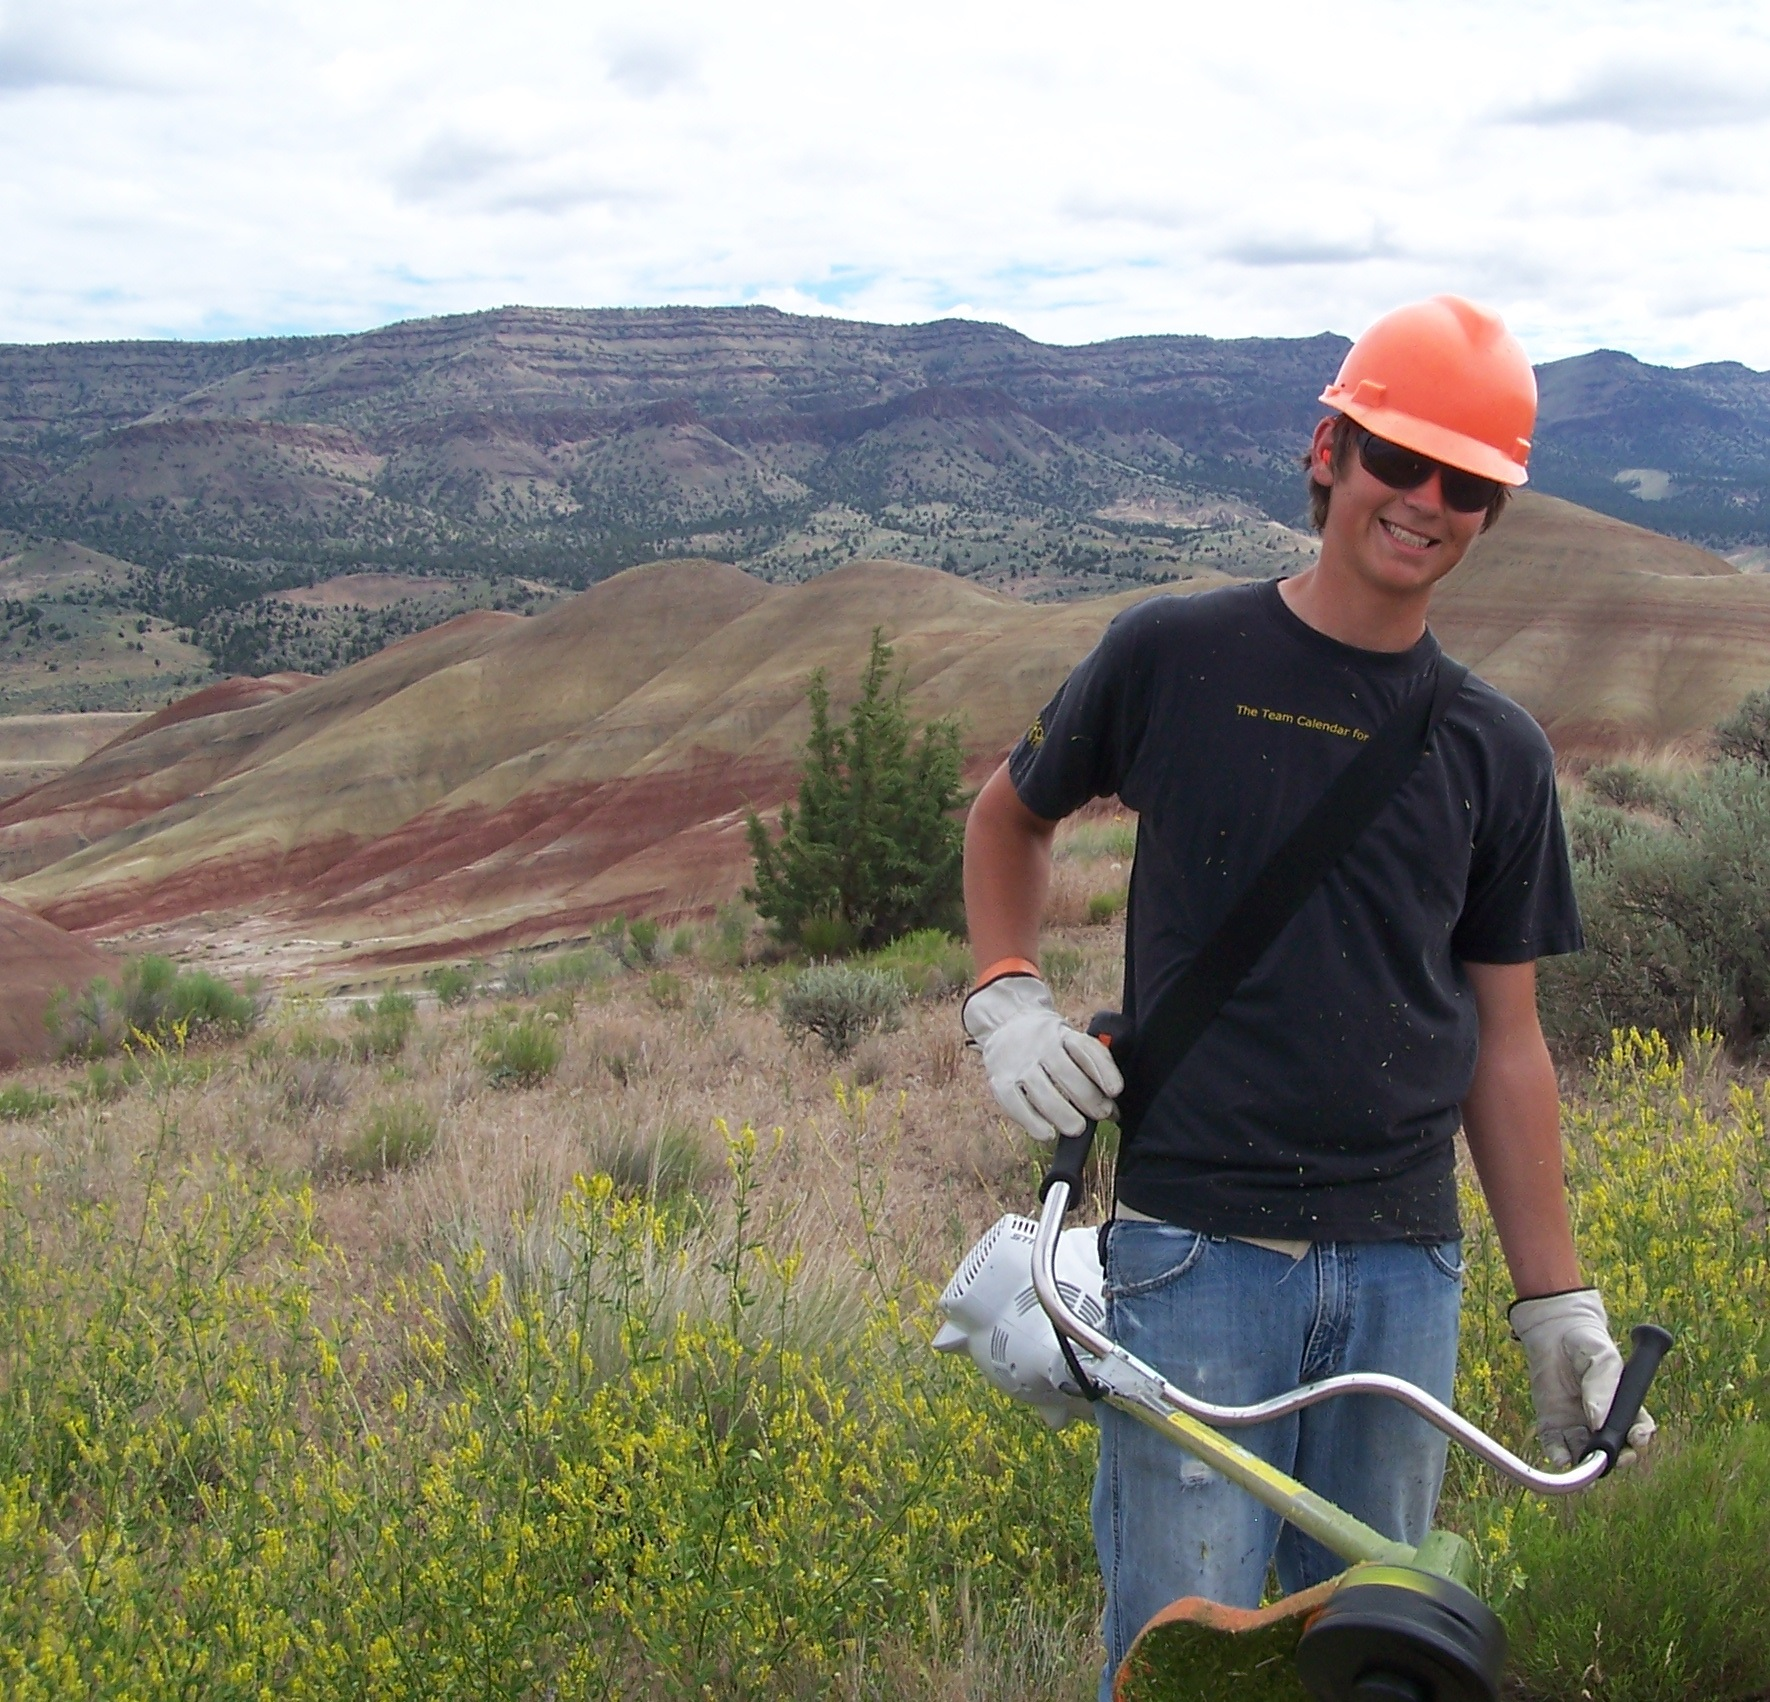 A teenager in an orage hard hat stands in the right foreground holding a weedeater. The striped hills of the Painted Hills can be seen in the right and middle of the photgraph in the background.